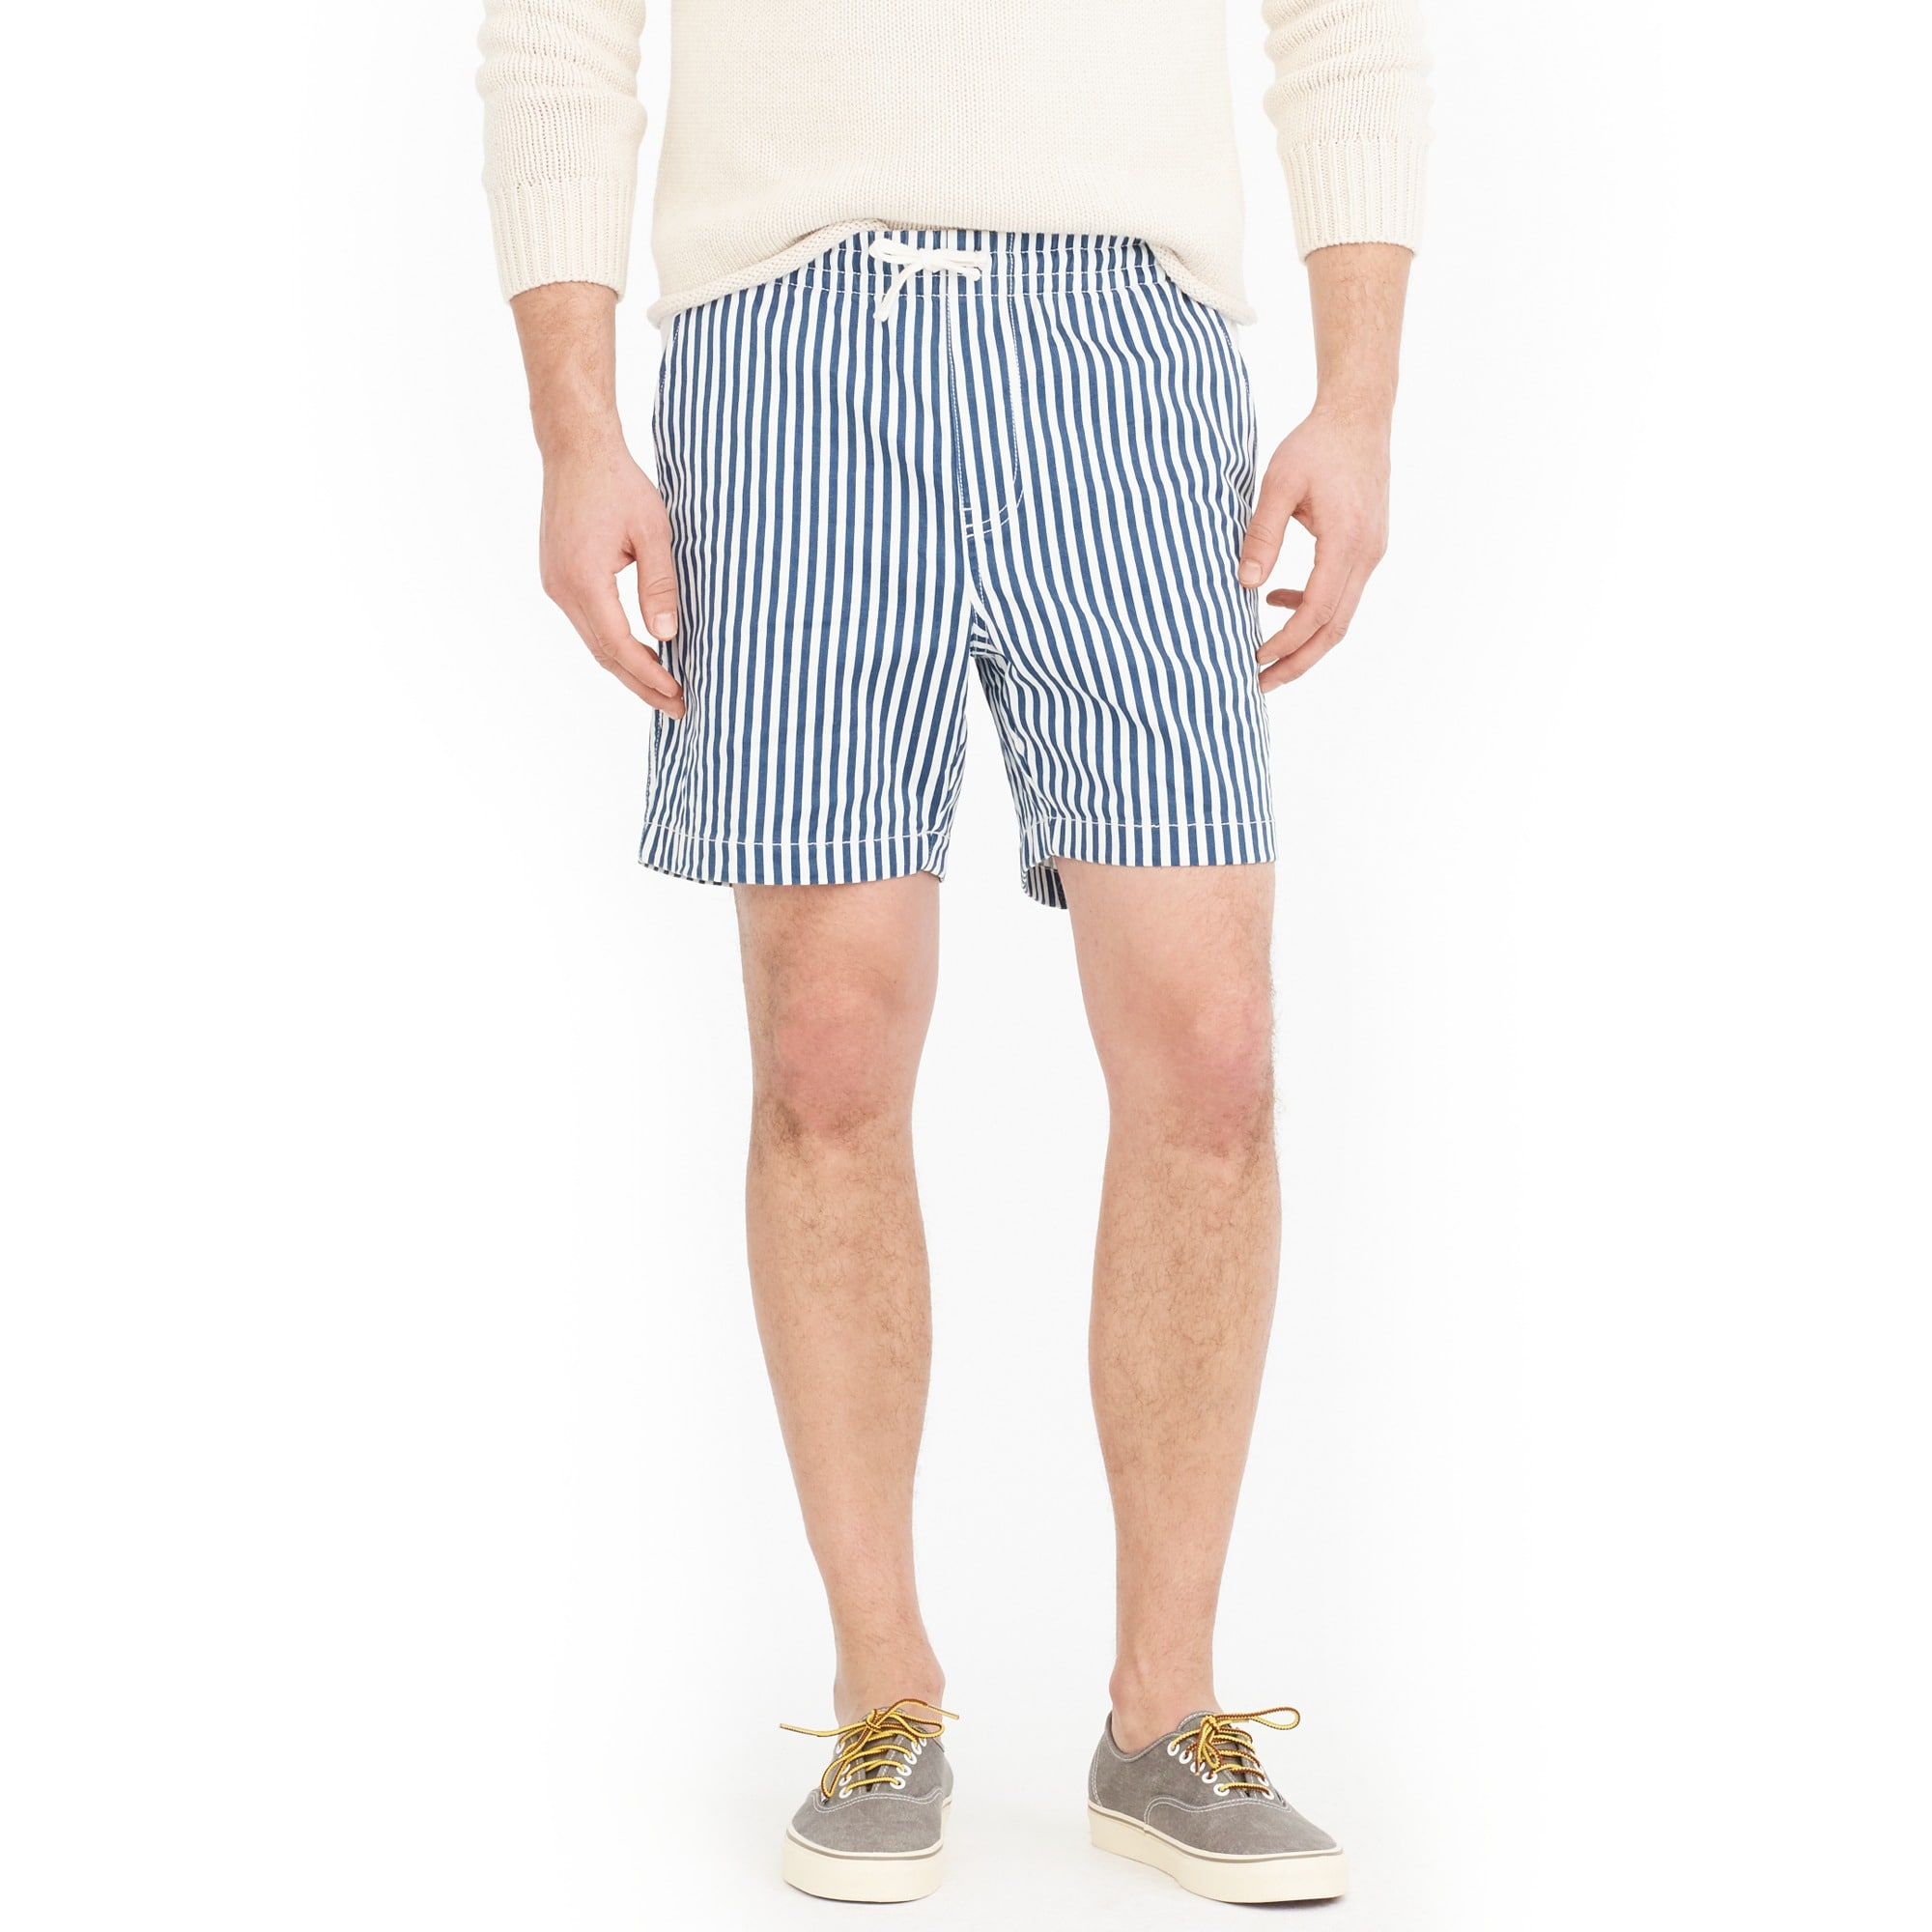 Stretch dock short in cotton stripe